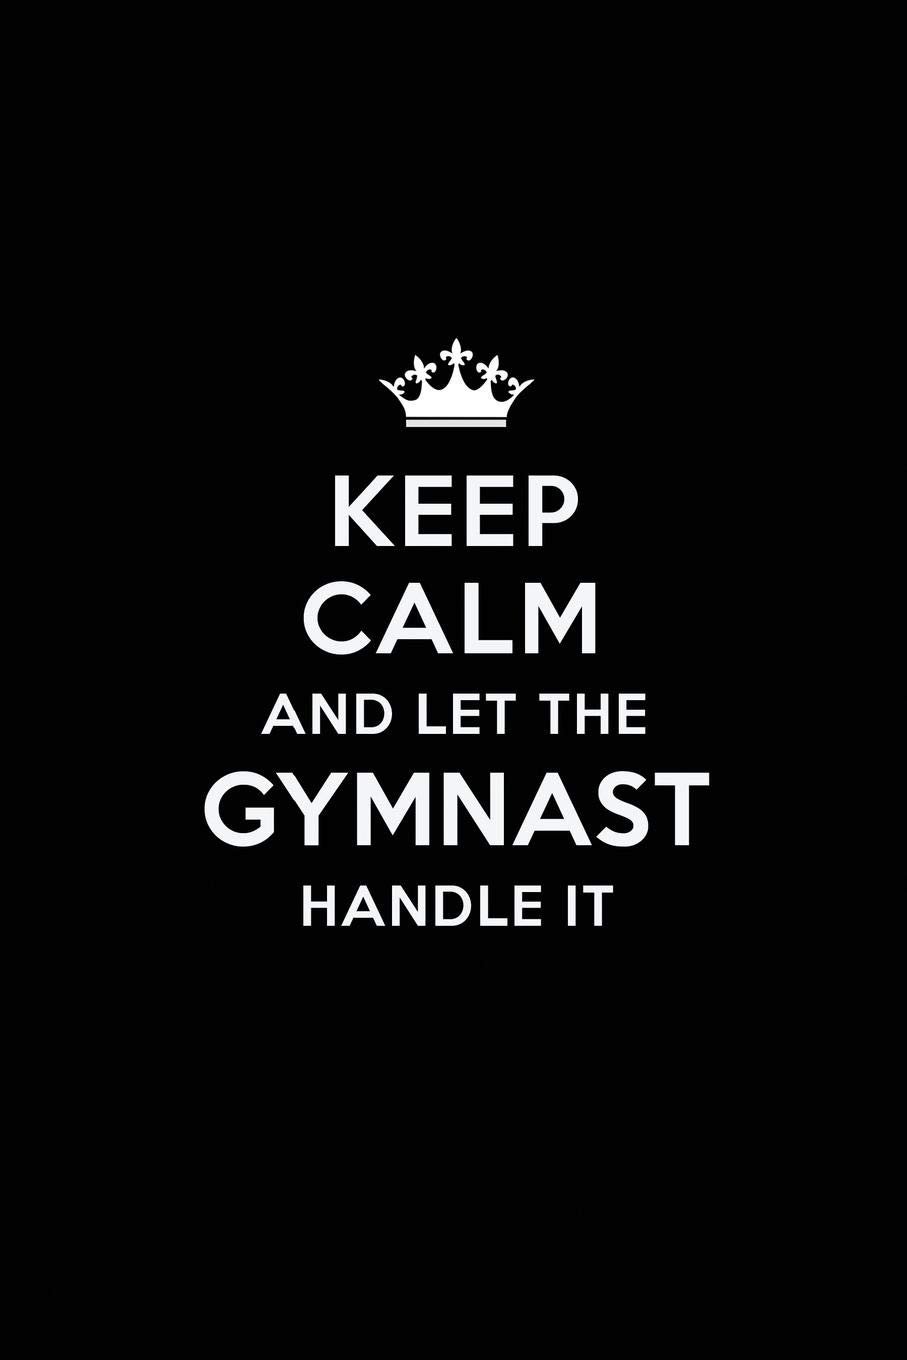 Keep Calm And Let The Gymnast Handle It  Blank Lined Gymnast Journal Notebook Diary As A Perfect BirthdayAppreciation DayBusiness Thanksgiving Or Christmas Gift For Friends Coworkers And Family.